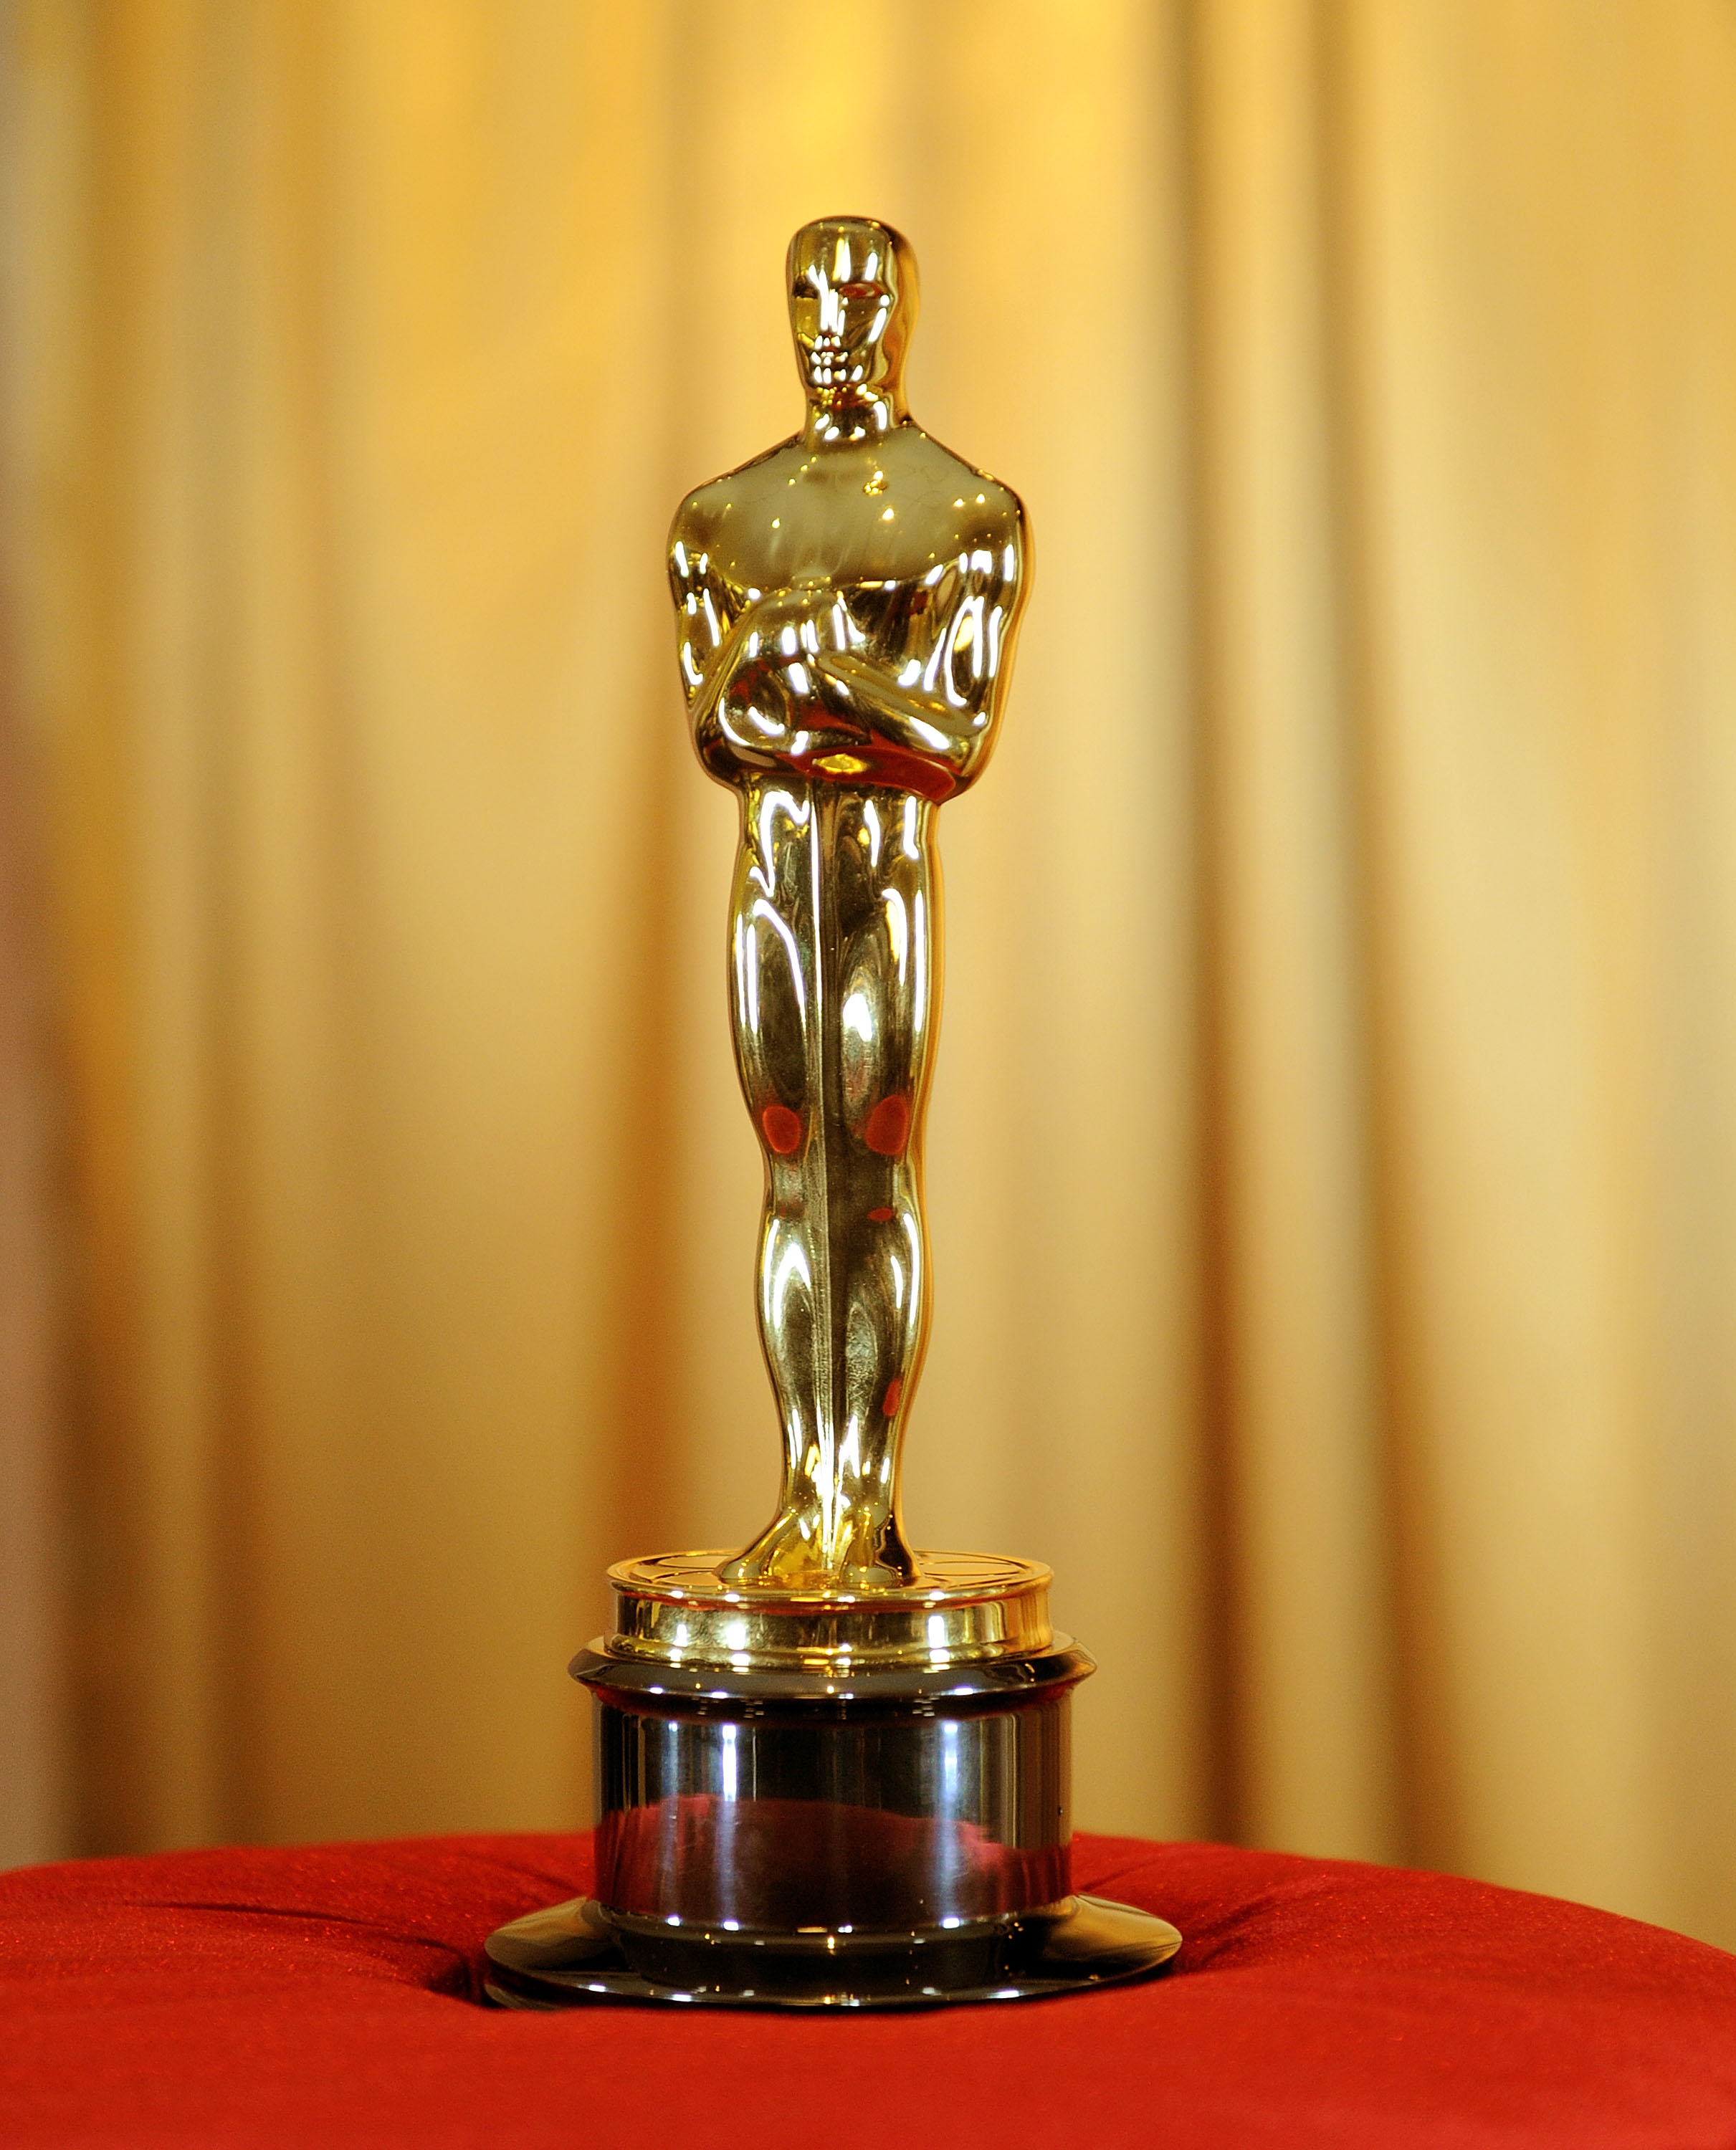 Temporada 3 Programa 10 Especial Oscars further Stock Photo Oscar Awards likewise Oscars also Animated Features Surge 19 Submitted Oscar 5999 furthermore Stock Photo Bafta Award Statue Bafta 95669256. on oscar award statue